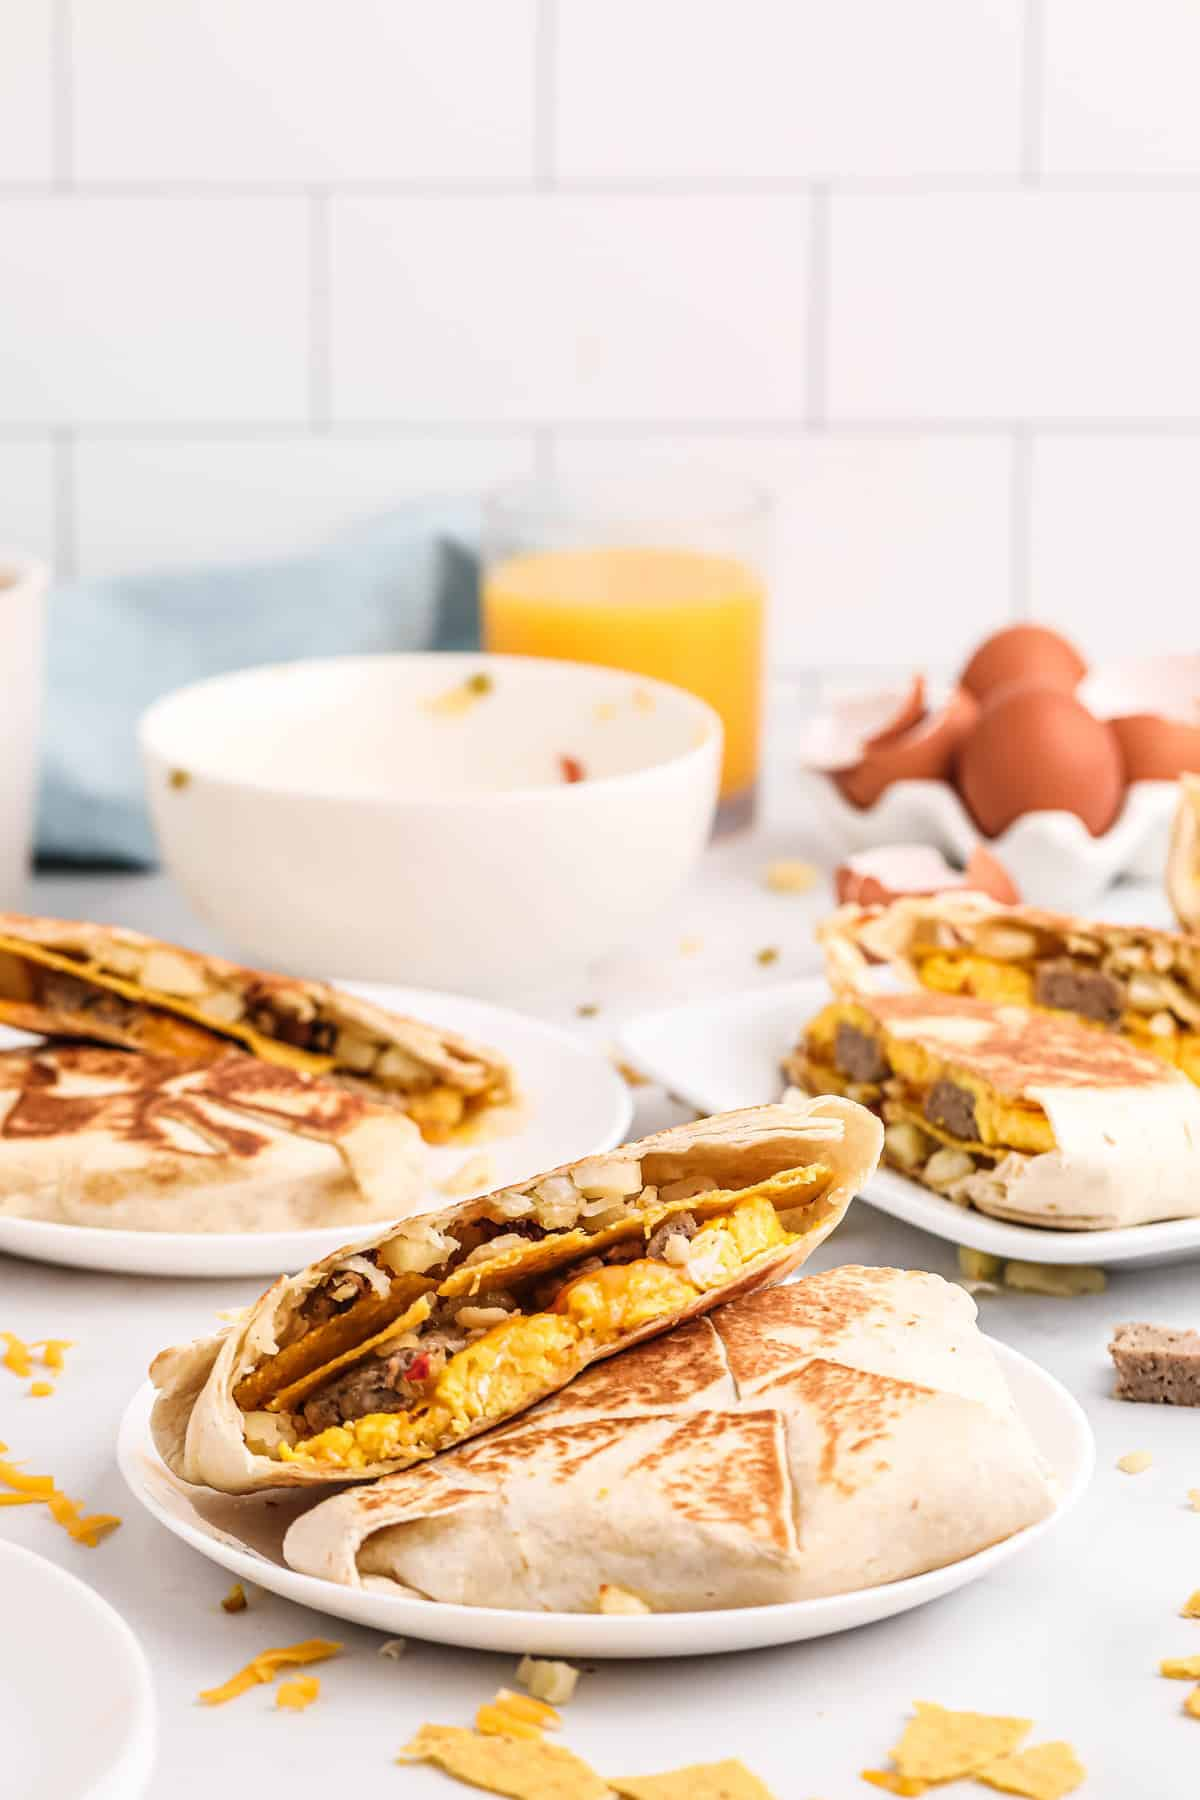 Tortilla filled with eggs, sausage, hashbrowns, and more, toasted to golden brown.